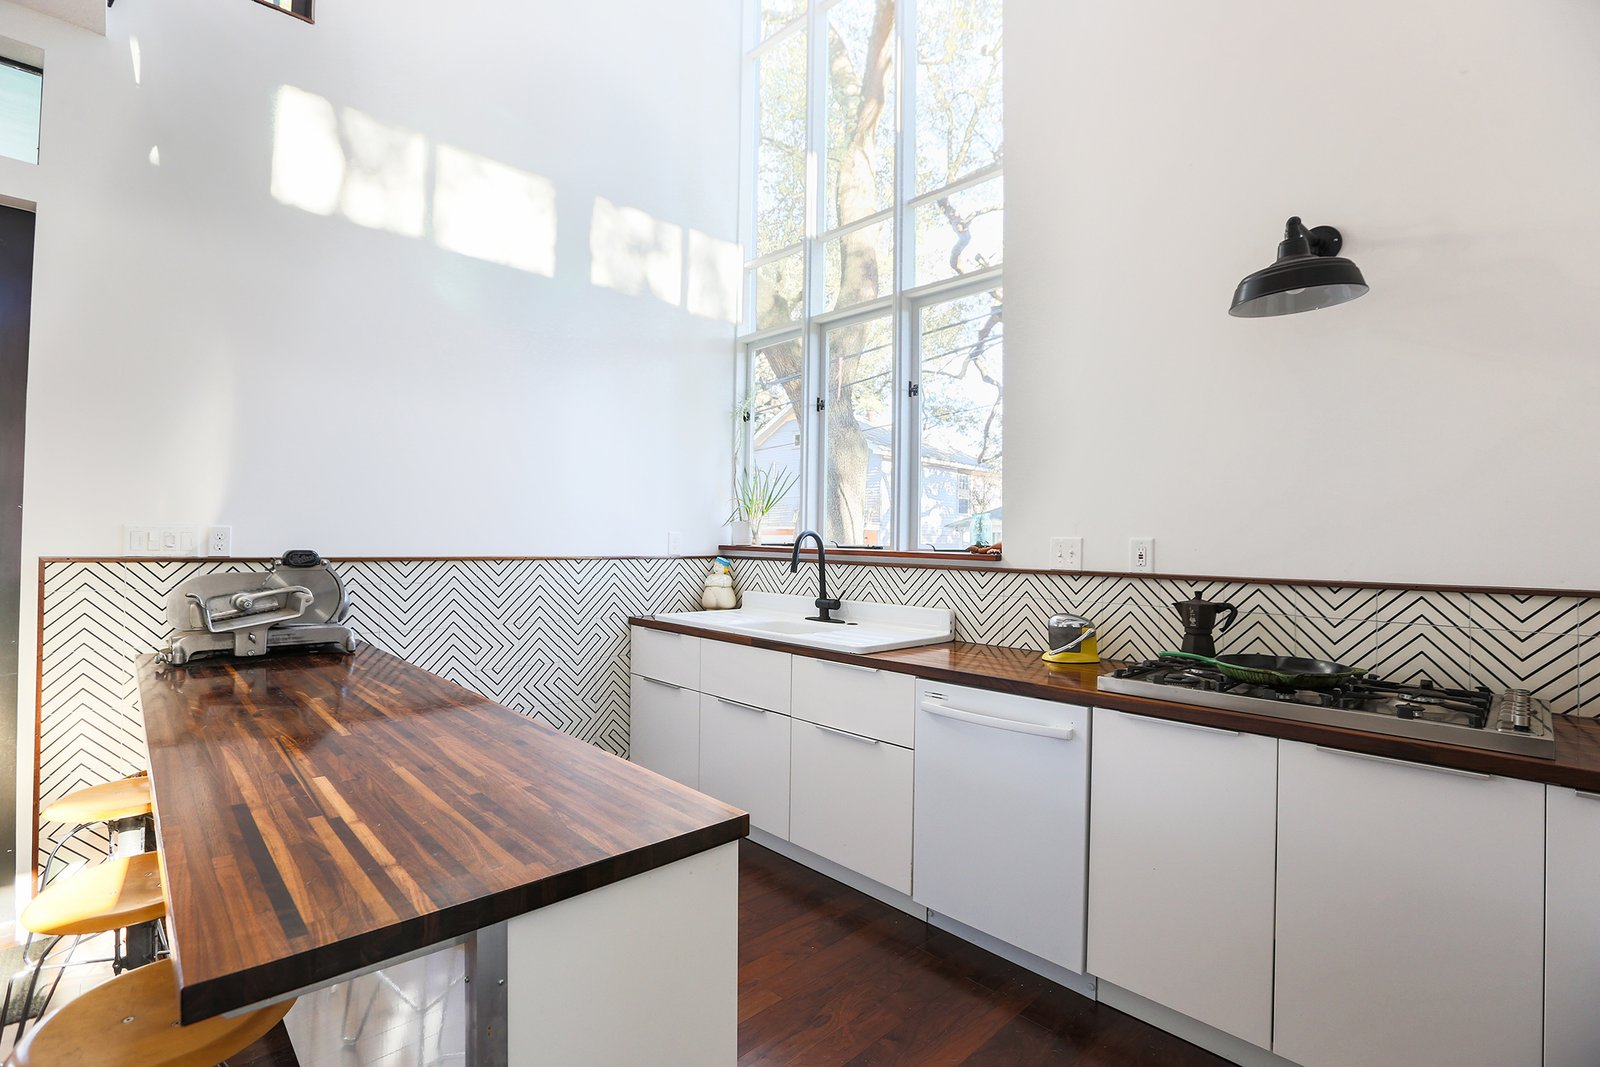 The light-filled kitchen space. Cle tiles are used as backsplash, Ikea cabinets and Walnut butcher-block countertops make the working surfaces of the space.